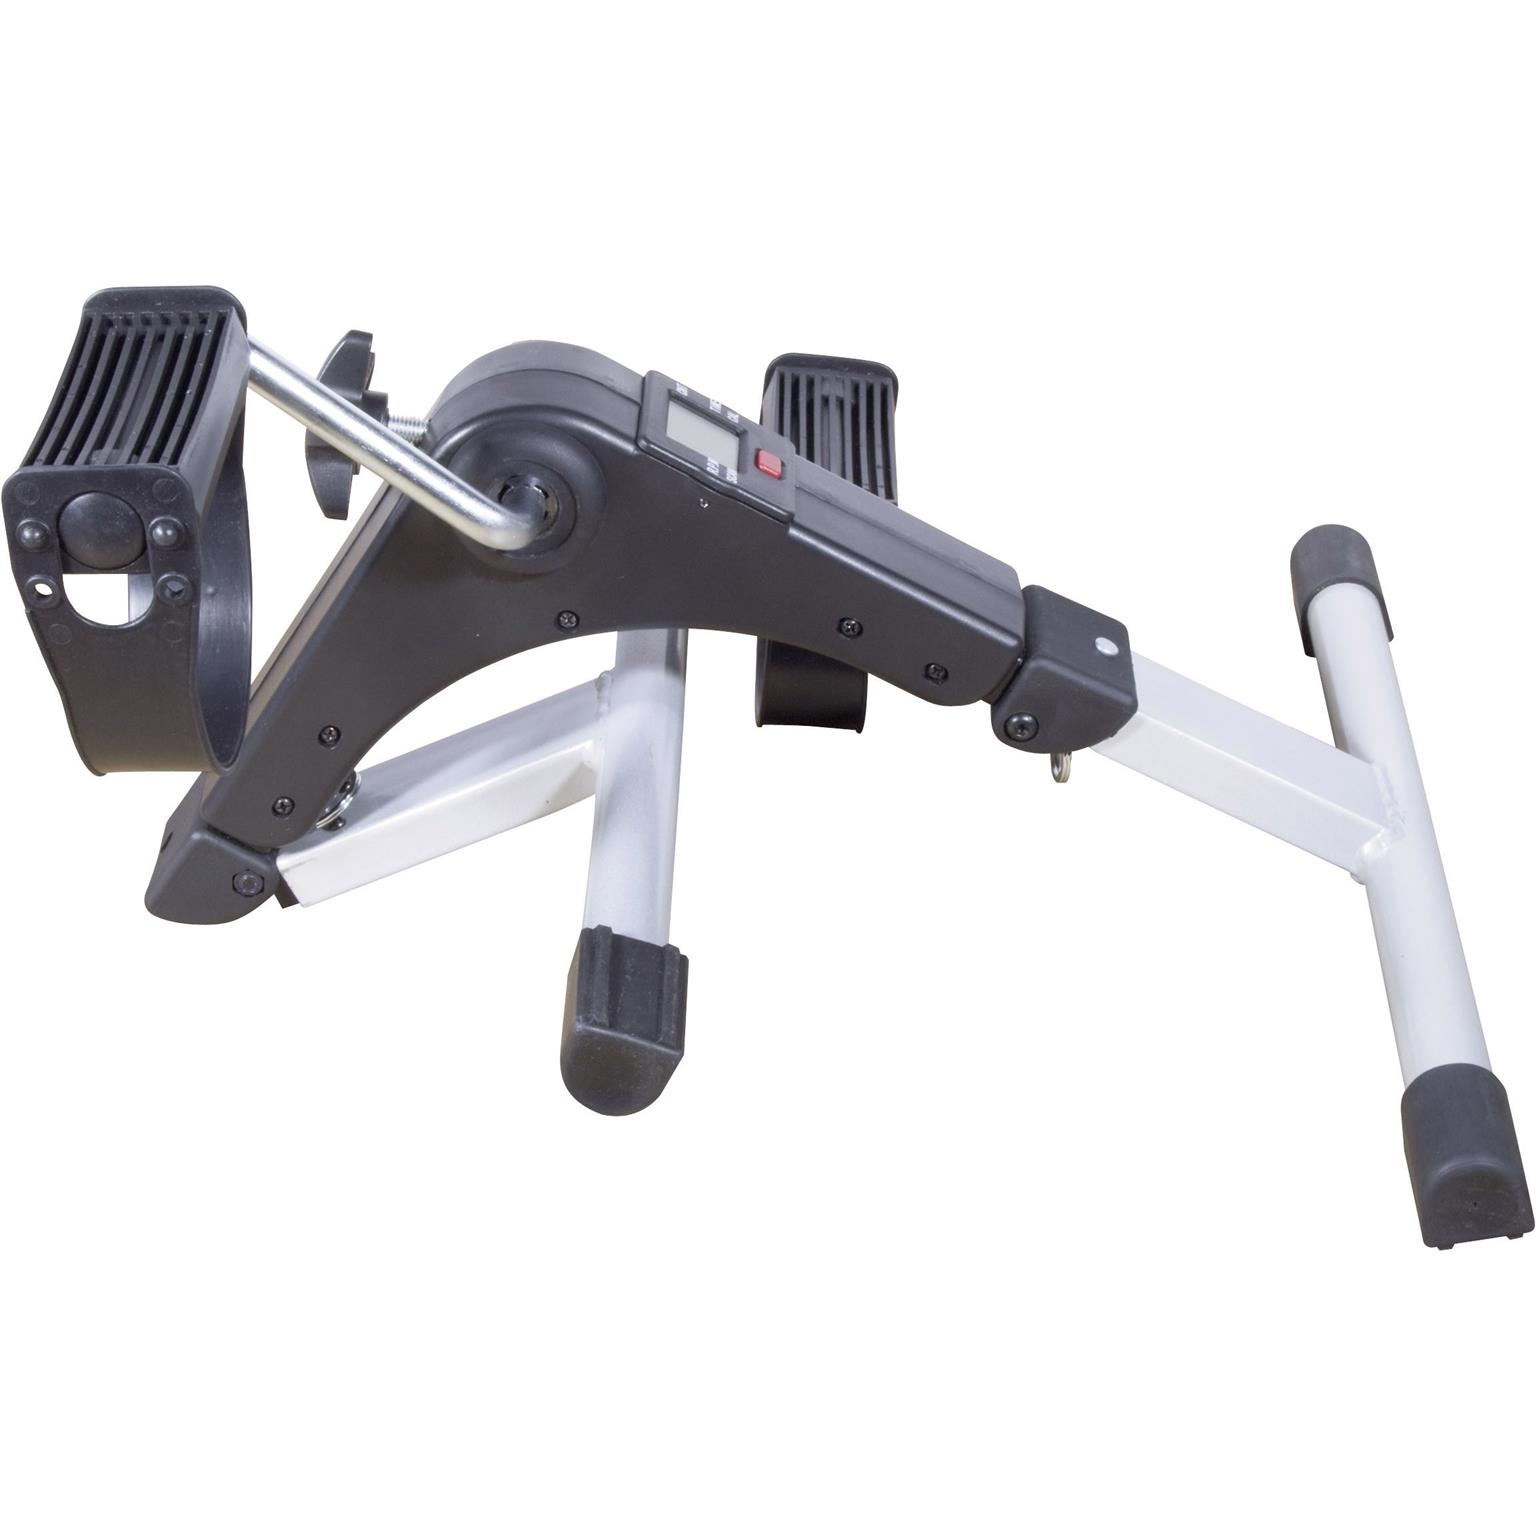 Pedal Exerciser with Digital Display by Drive Medical. On Sale. While stocks Last